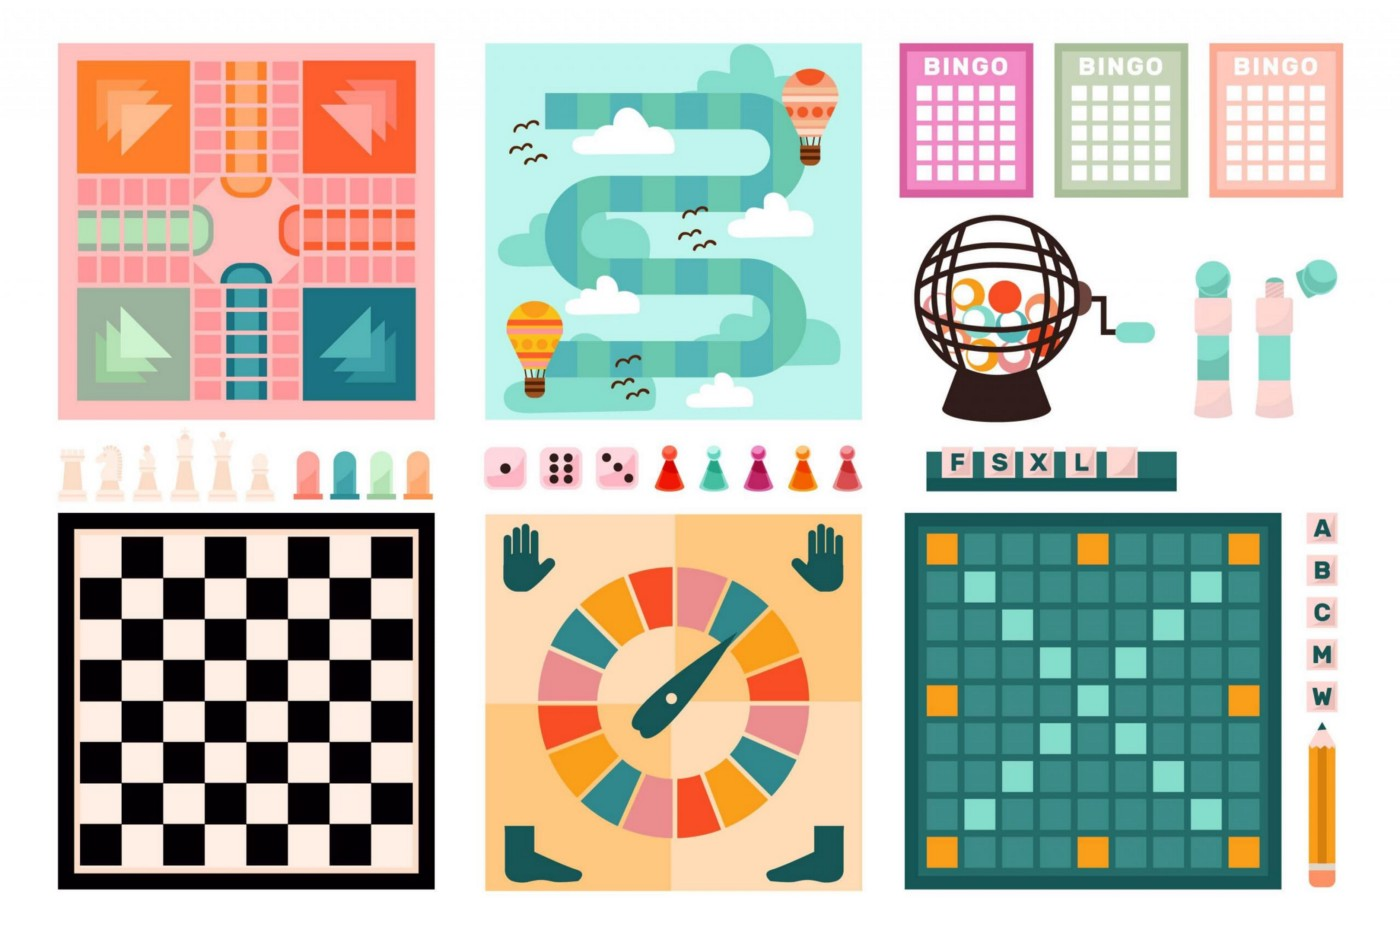 6 Ways Playing Board Games May Help Children Learn to Follow Rules